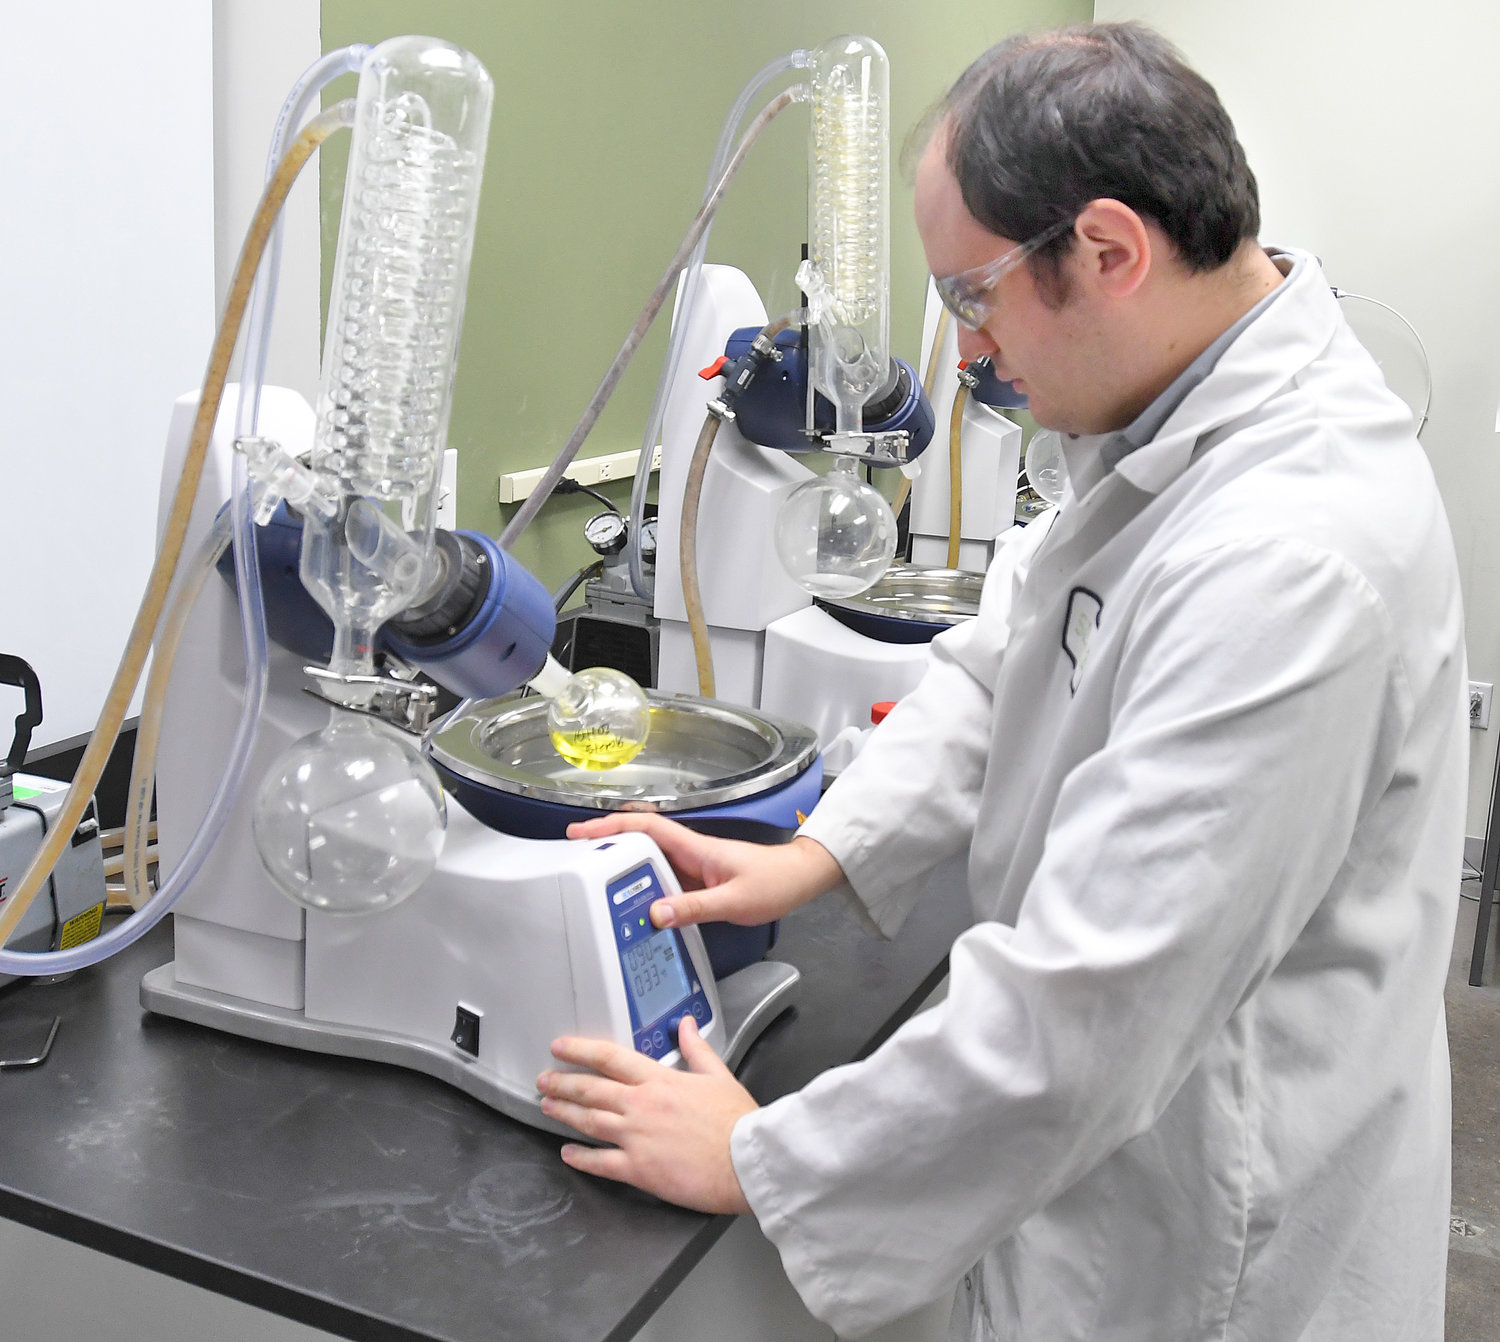 TESTING UNDER WAY — Derek Treonze, a lab technician at Sovena USA Inc., tests a sample of avocado oil for purity in the company's lab at its Griffiss business park facility. Additional photos online at www.romesentinel.com.